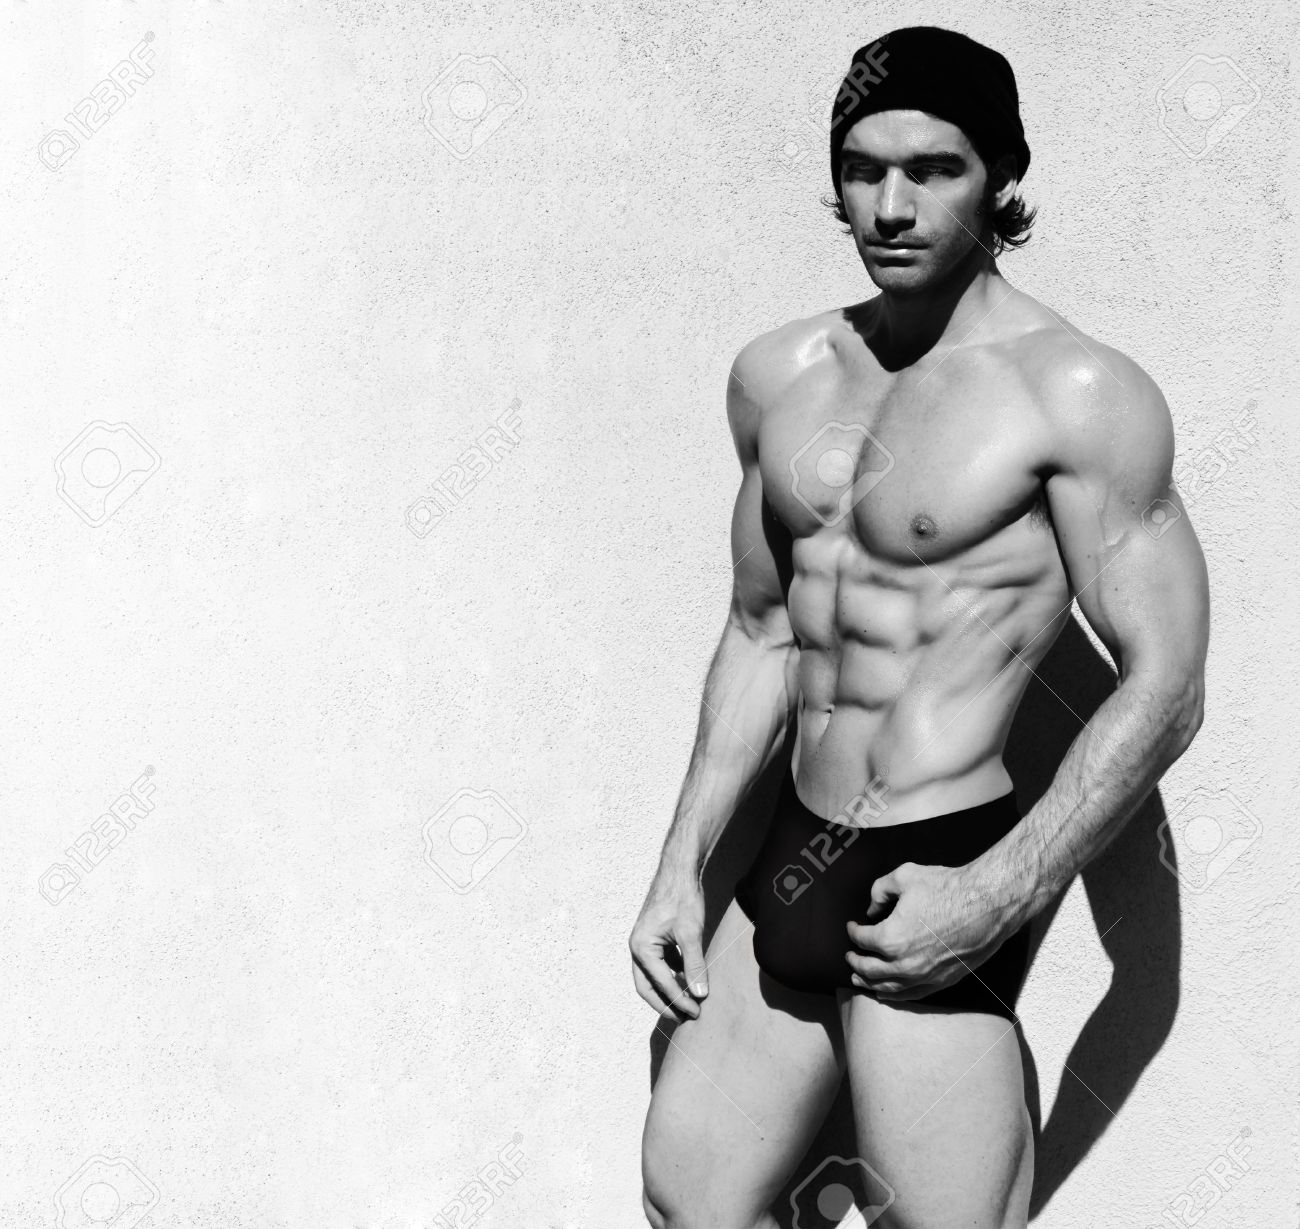 Sexy fine art black and white portrait of a very muscular shirtless male model Stock Photo - 9789931